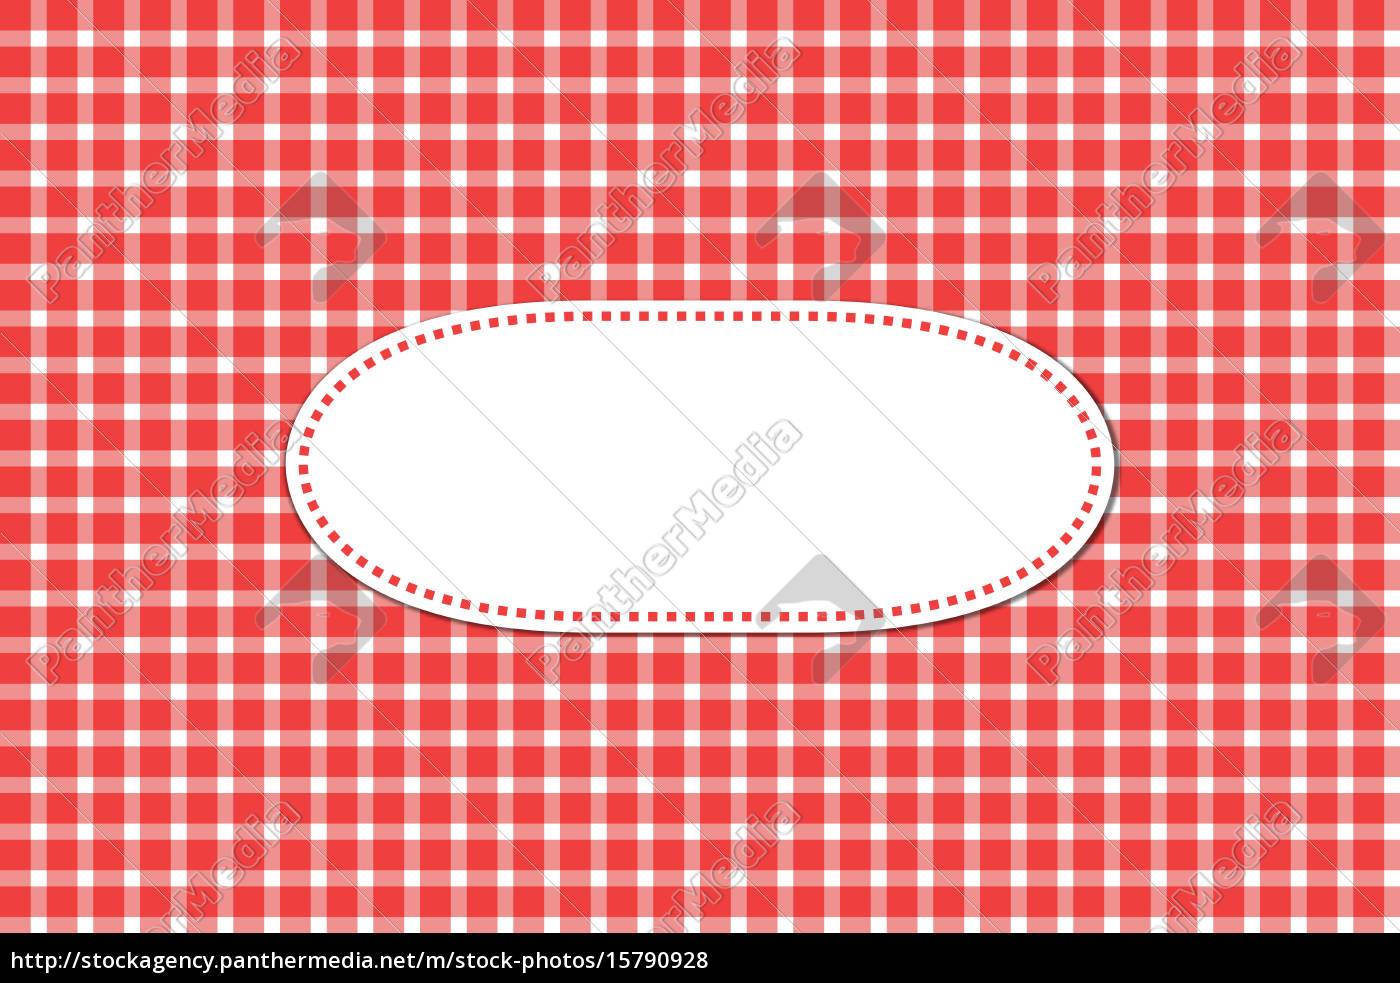 greeting, card, with, tablecloths, patterns, red - 15790928